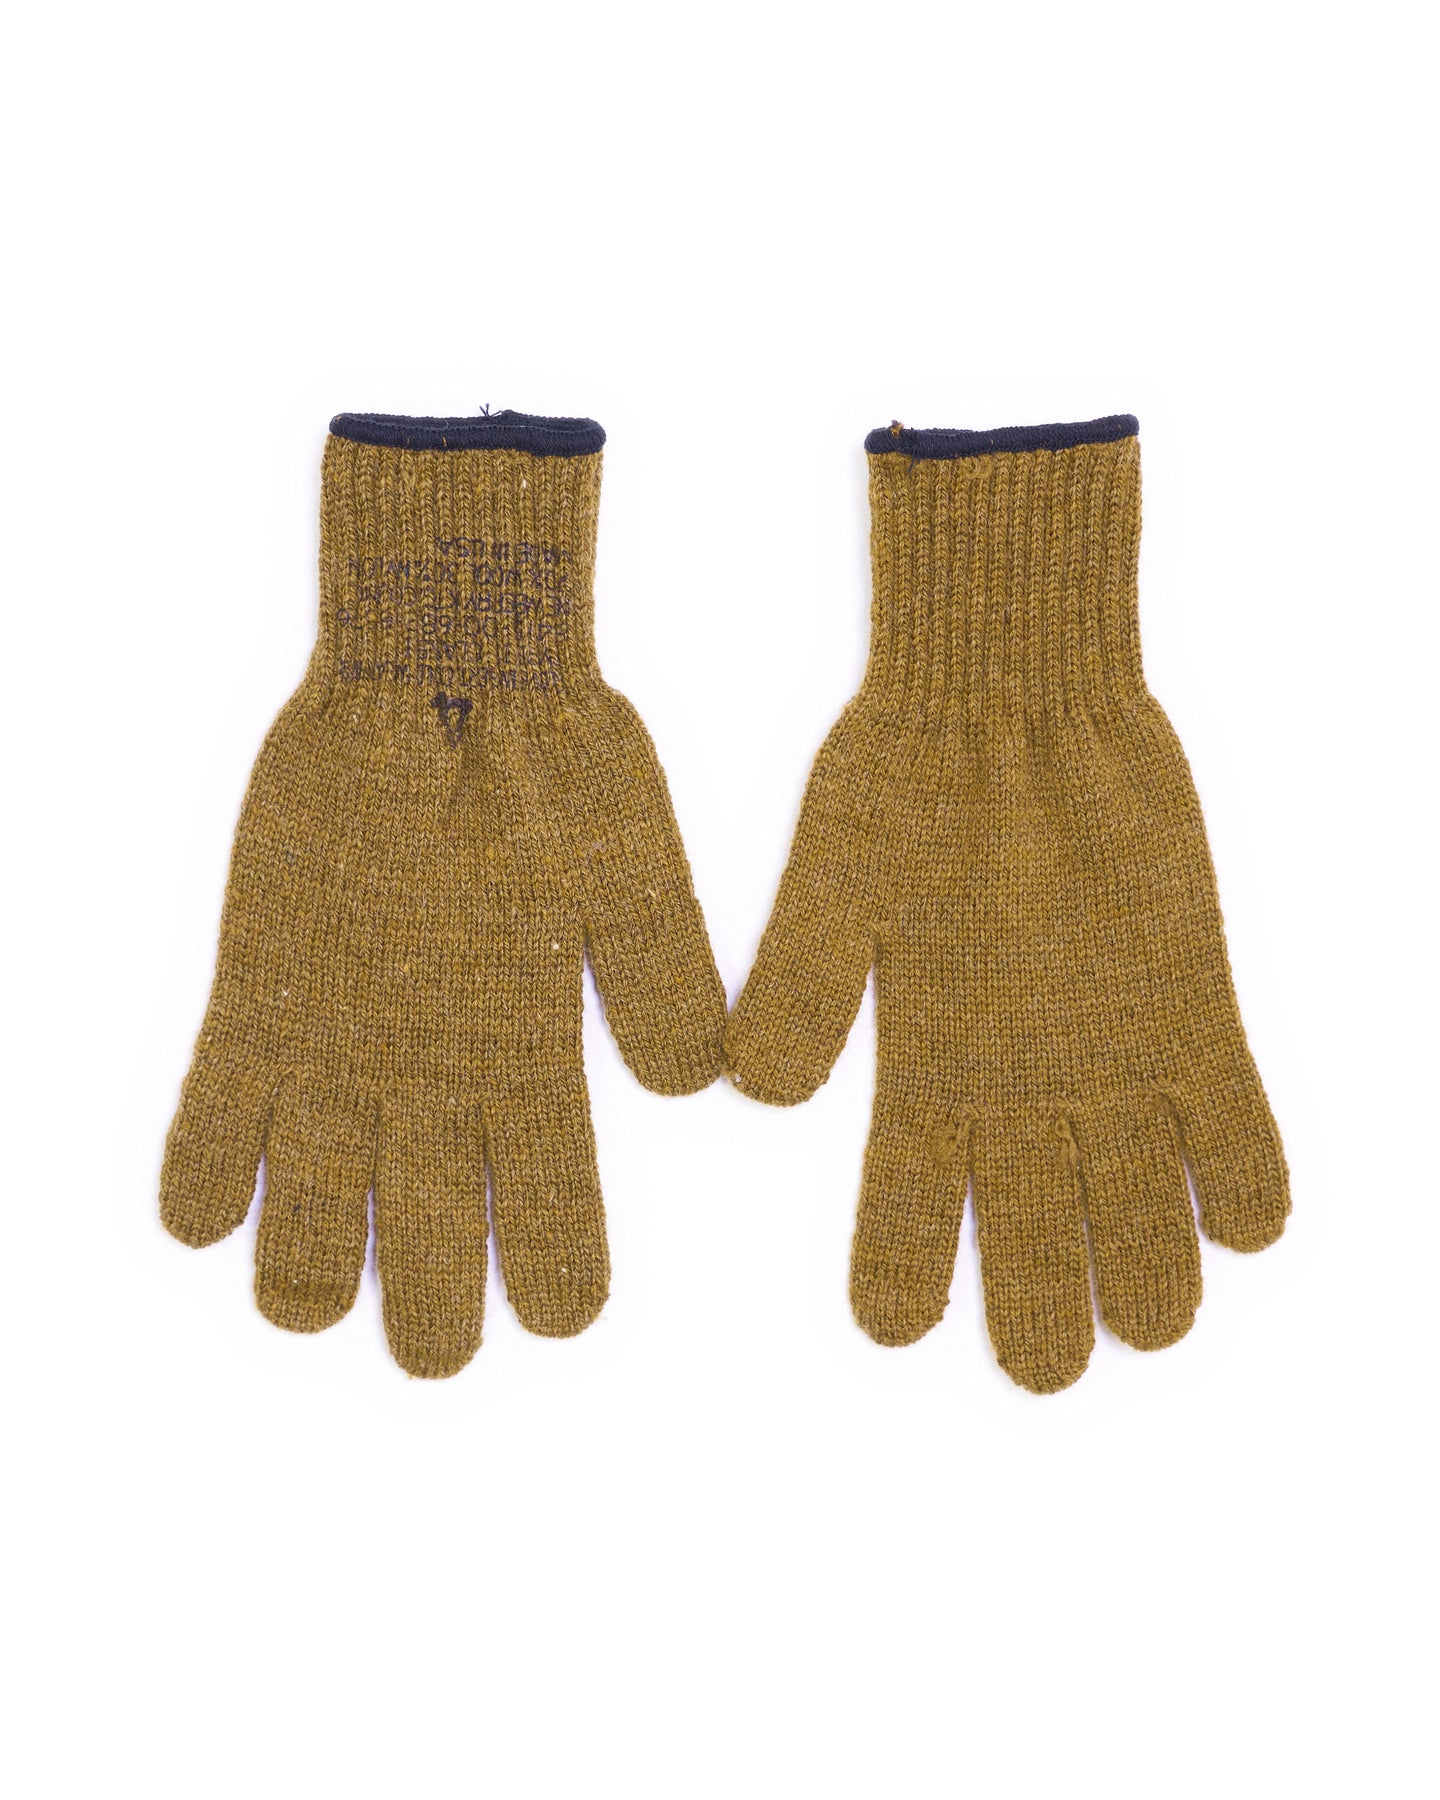 Wool Military Gloves - Tan